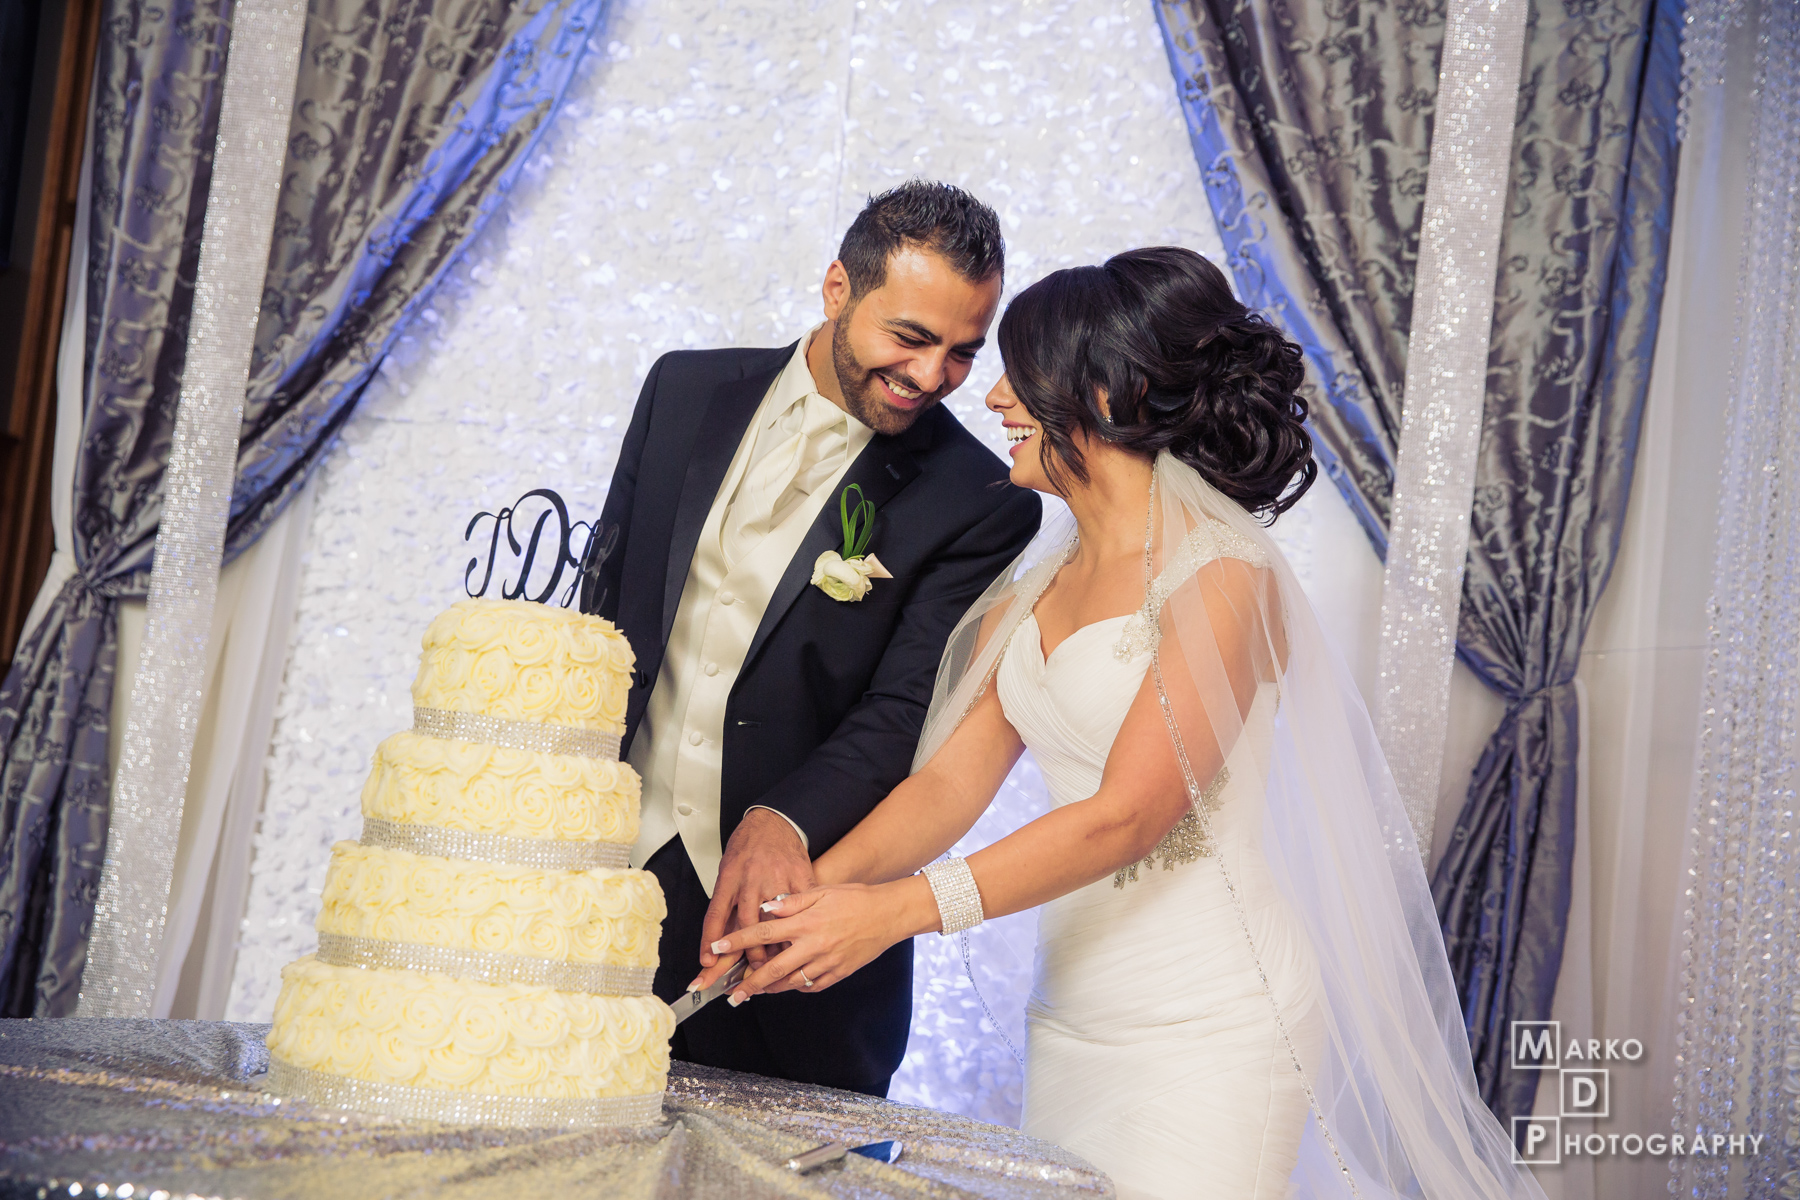 cake cutting wedding photographers